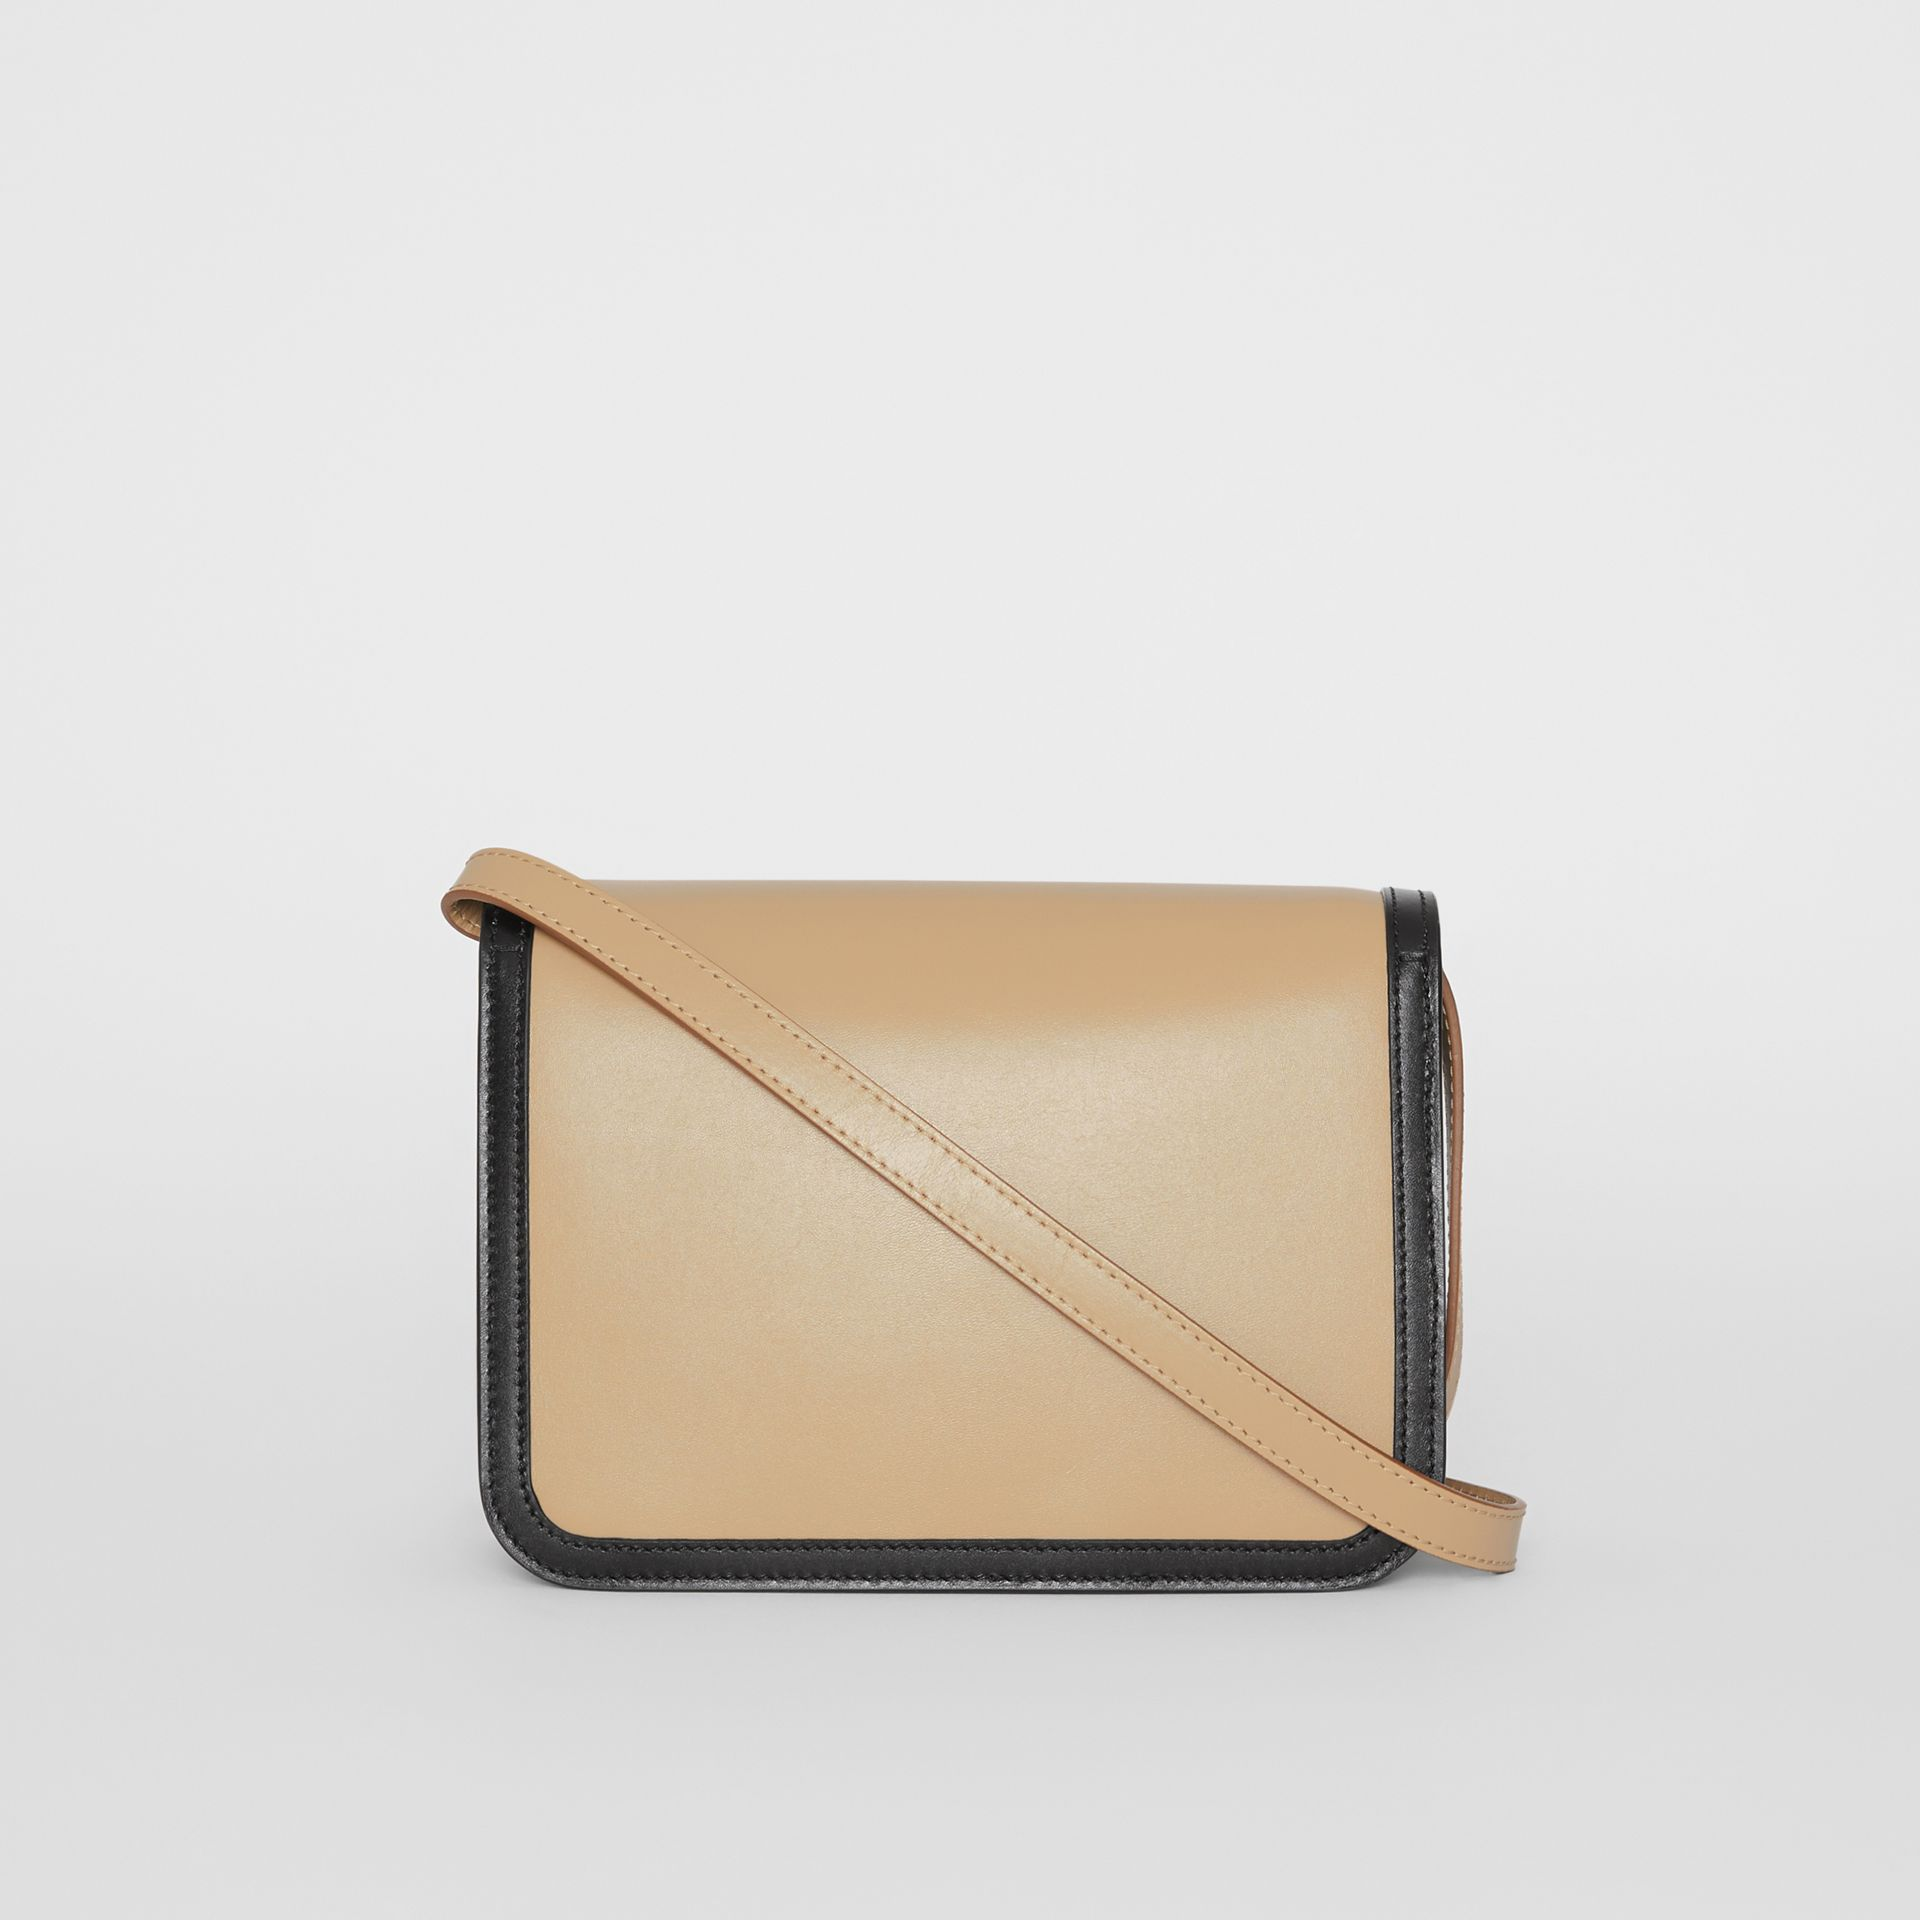 Small Two-tone Leather TB Bag in Honey/black - Women | Burberry - gallery image 7